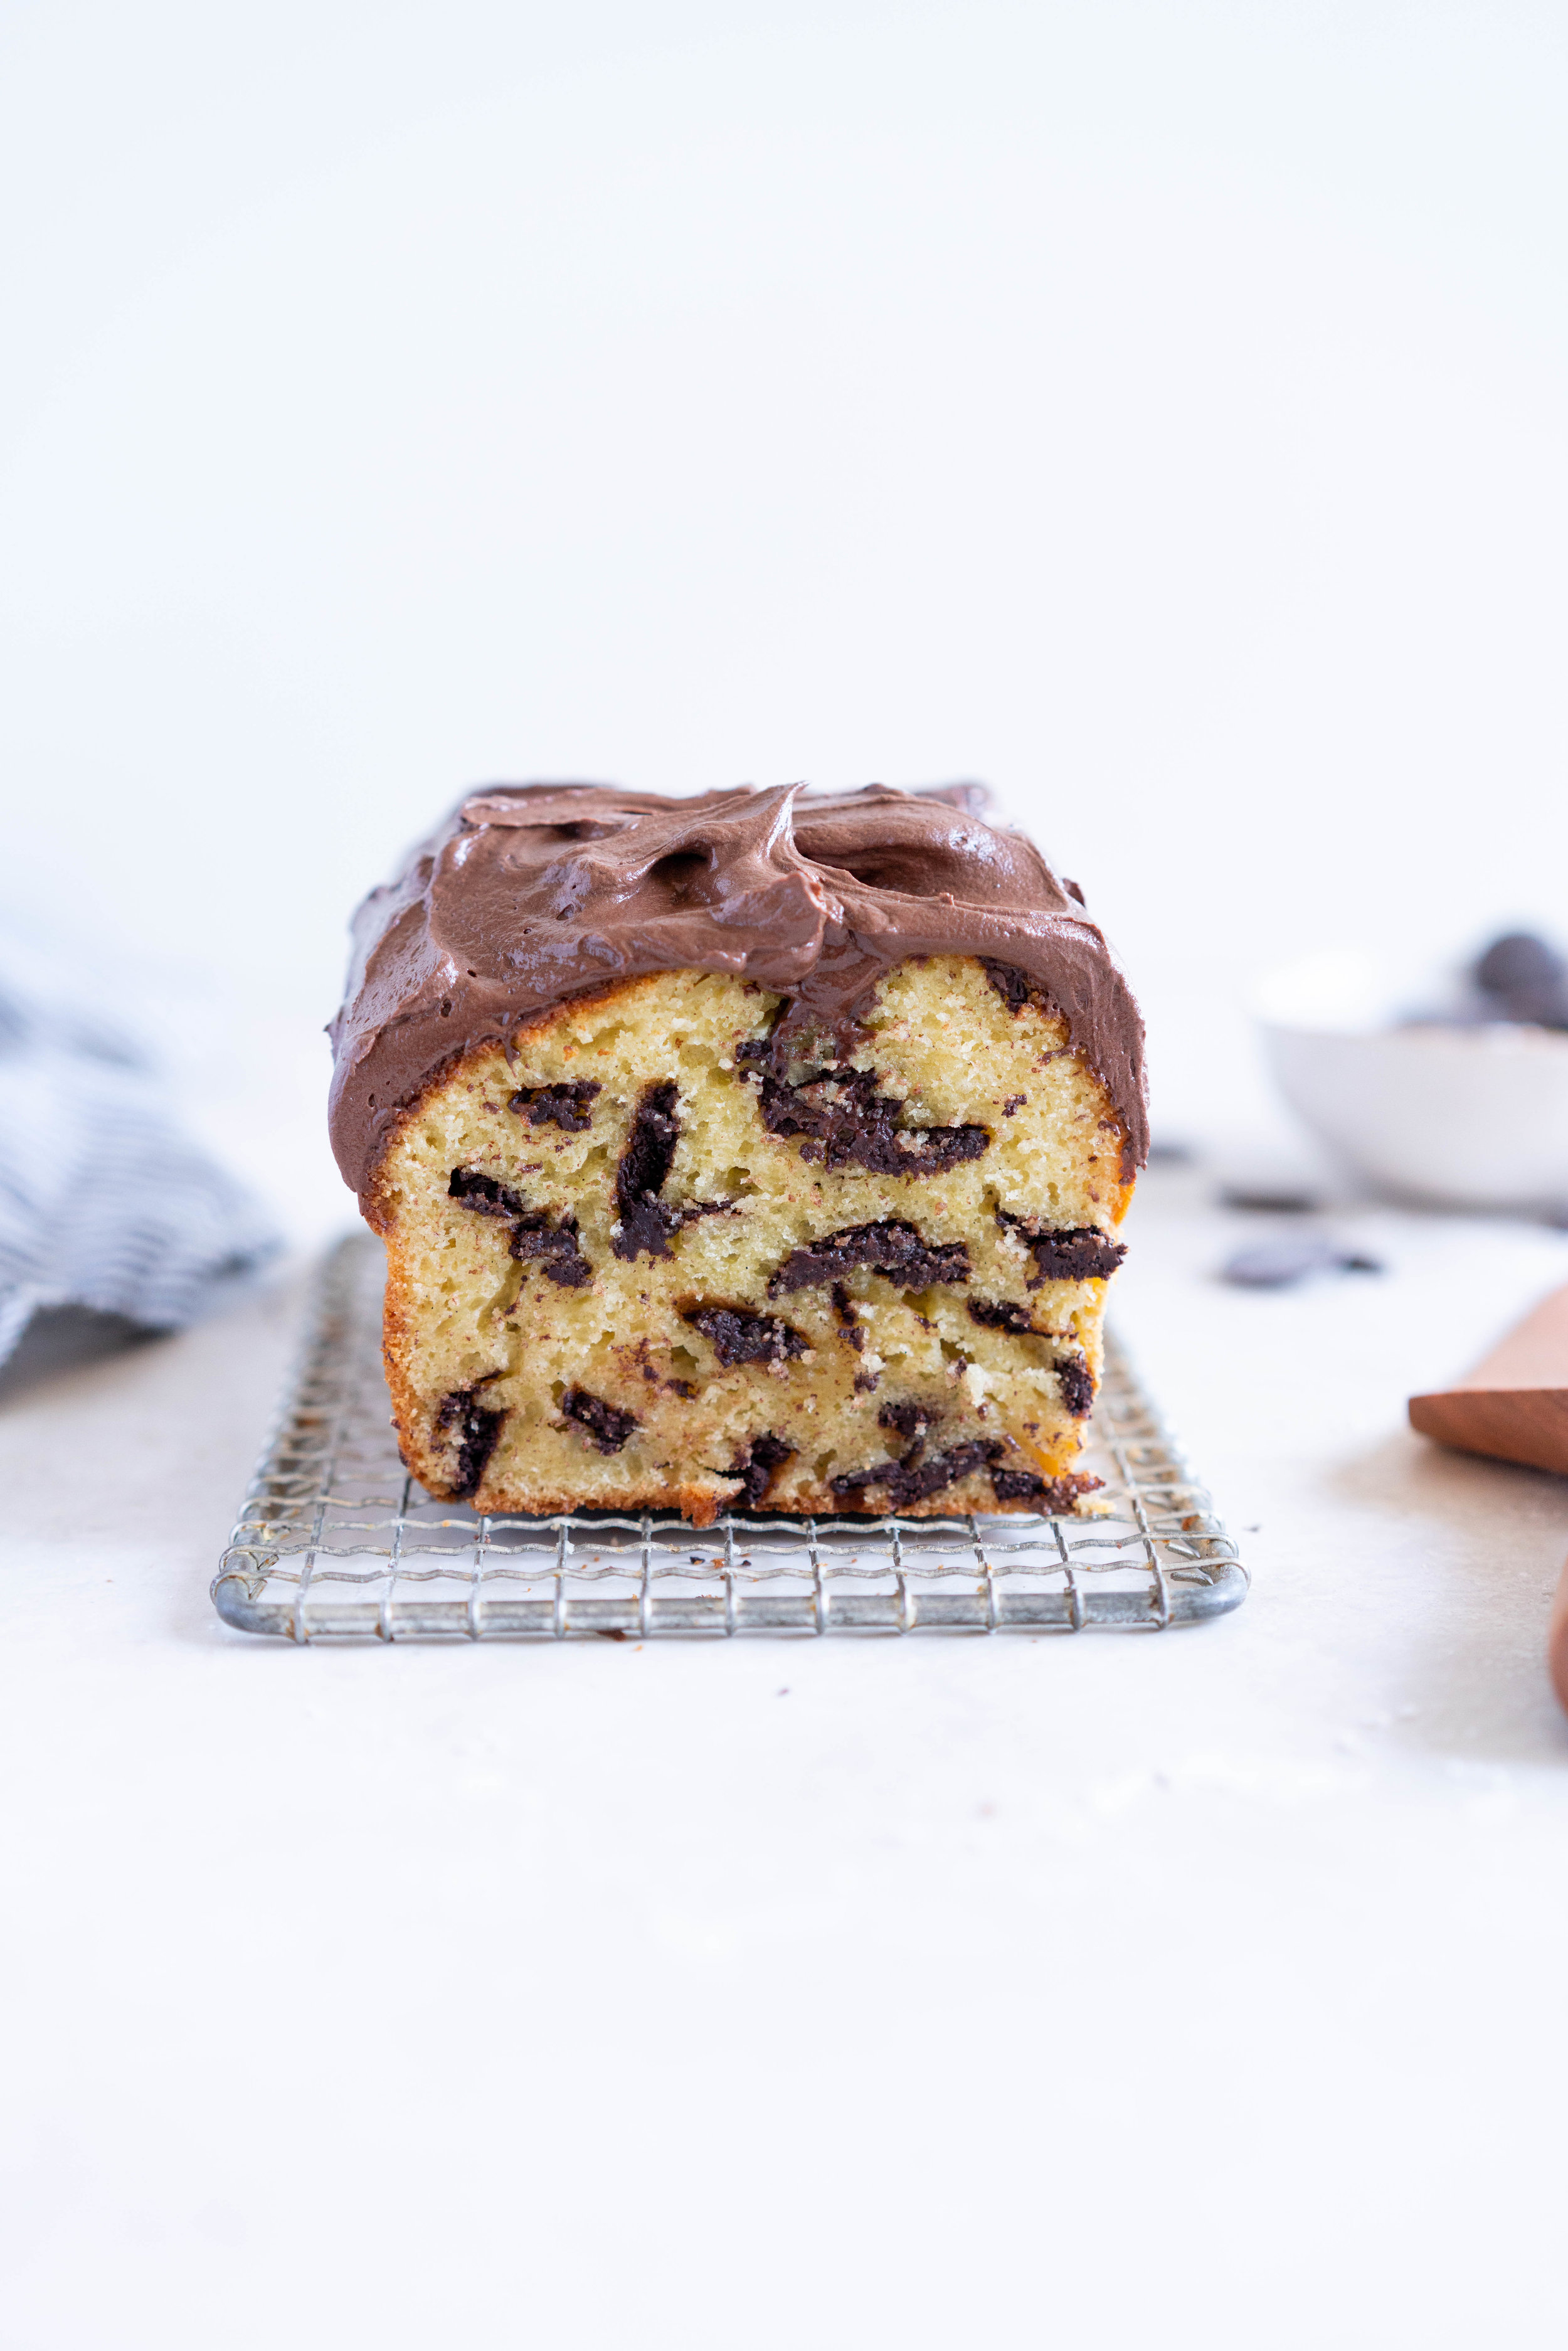 Chocolate Chunk Olive Oil Ricotta cake with Dark Chocolate buttercream - this cake is flavoursome from the olive oil, with a perfect crumb from the ricotta in the batter. It is studded with dark chocolate chunks throughout, and finished with a silky smooth dark chocolate buttercream. The perfect elevated loaf cake. #loafcake #poundcake #ricottacake